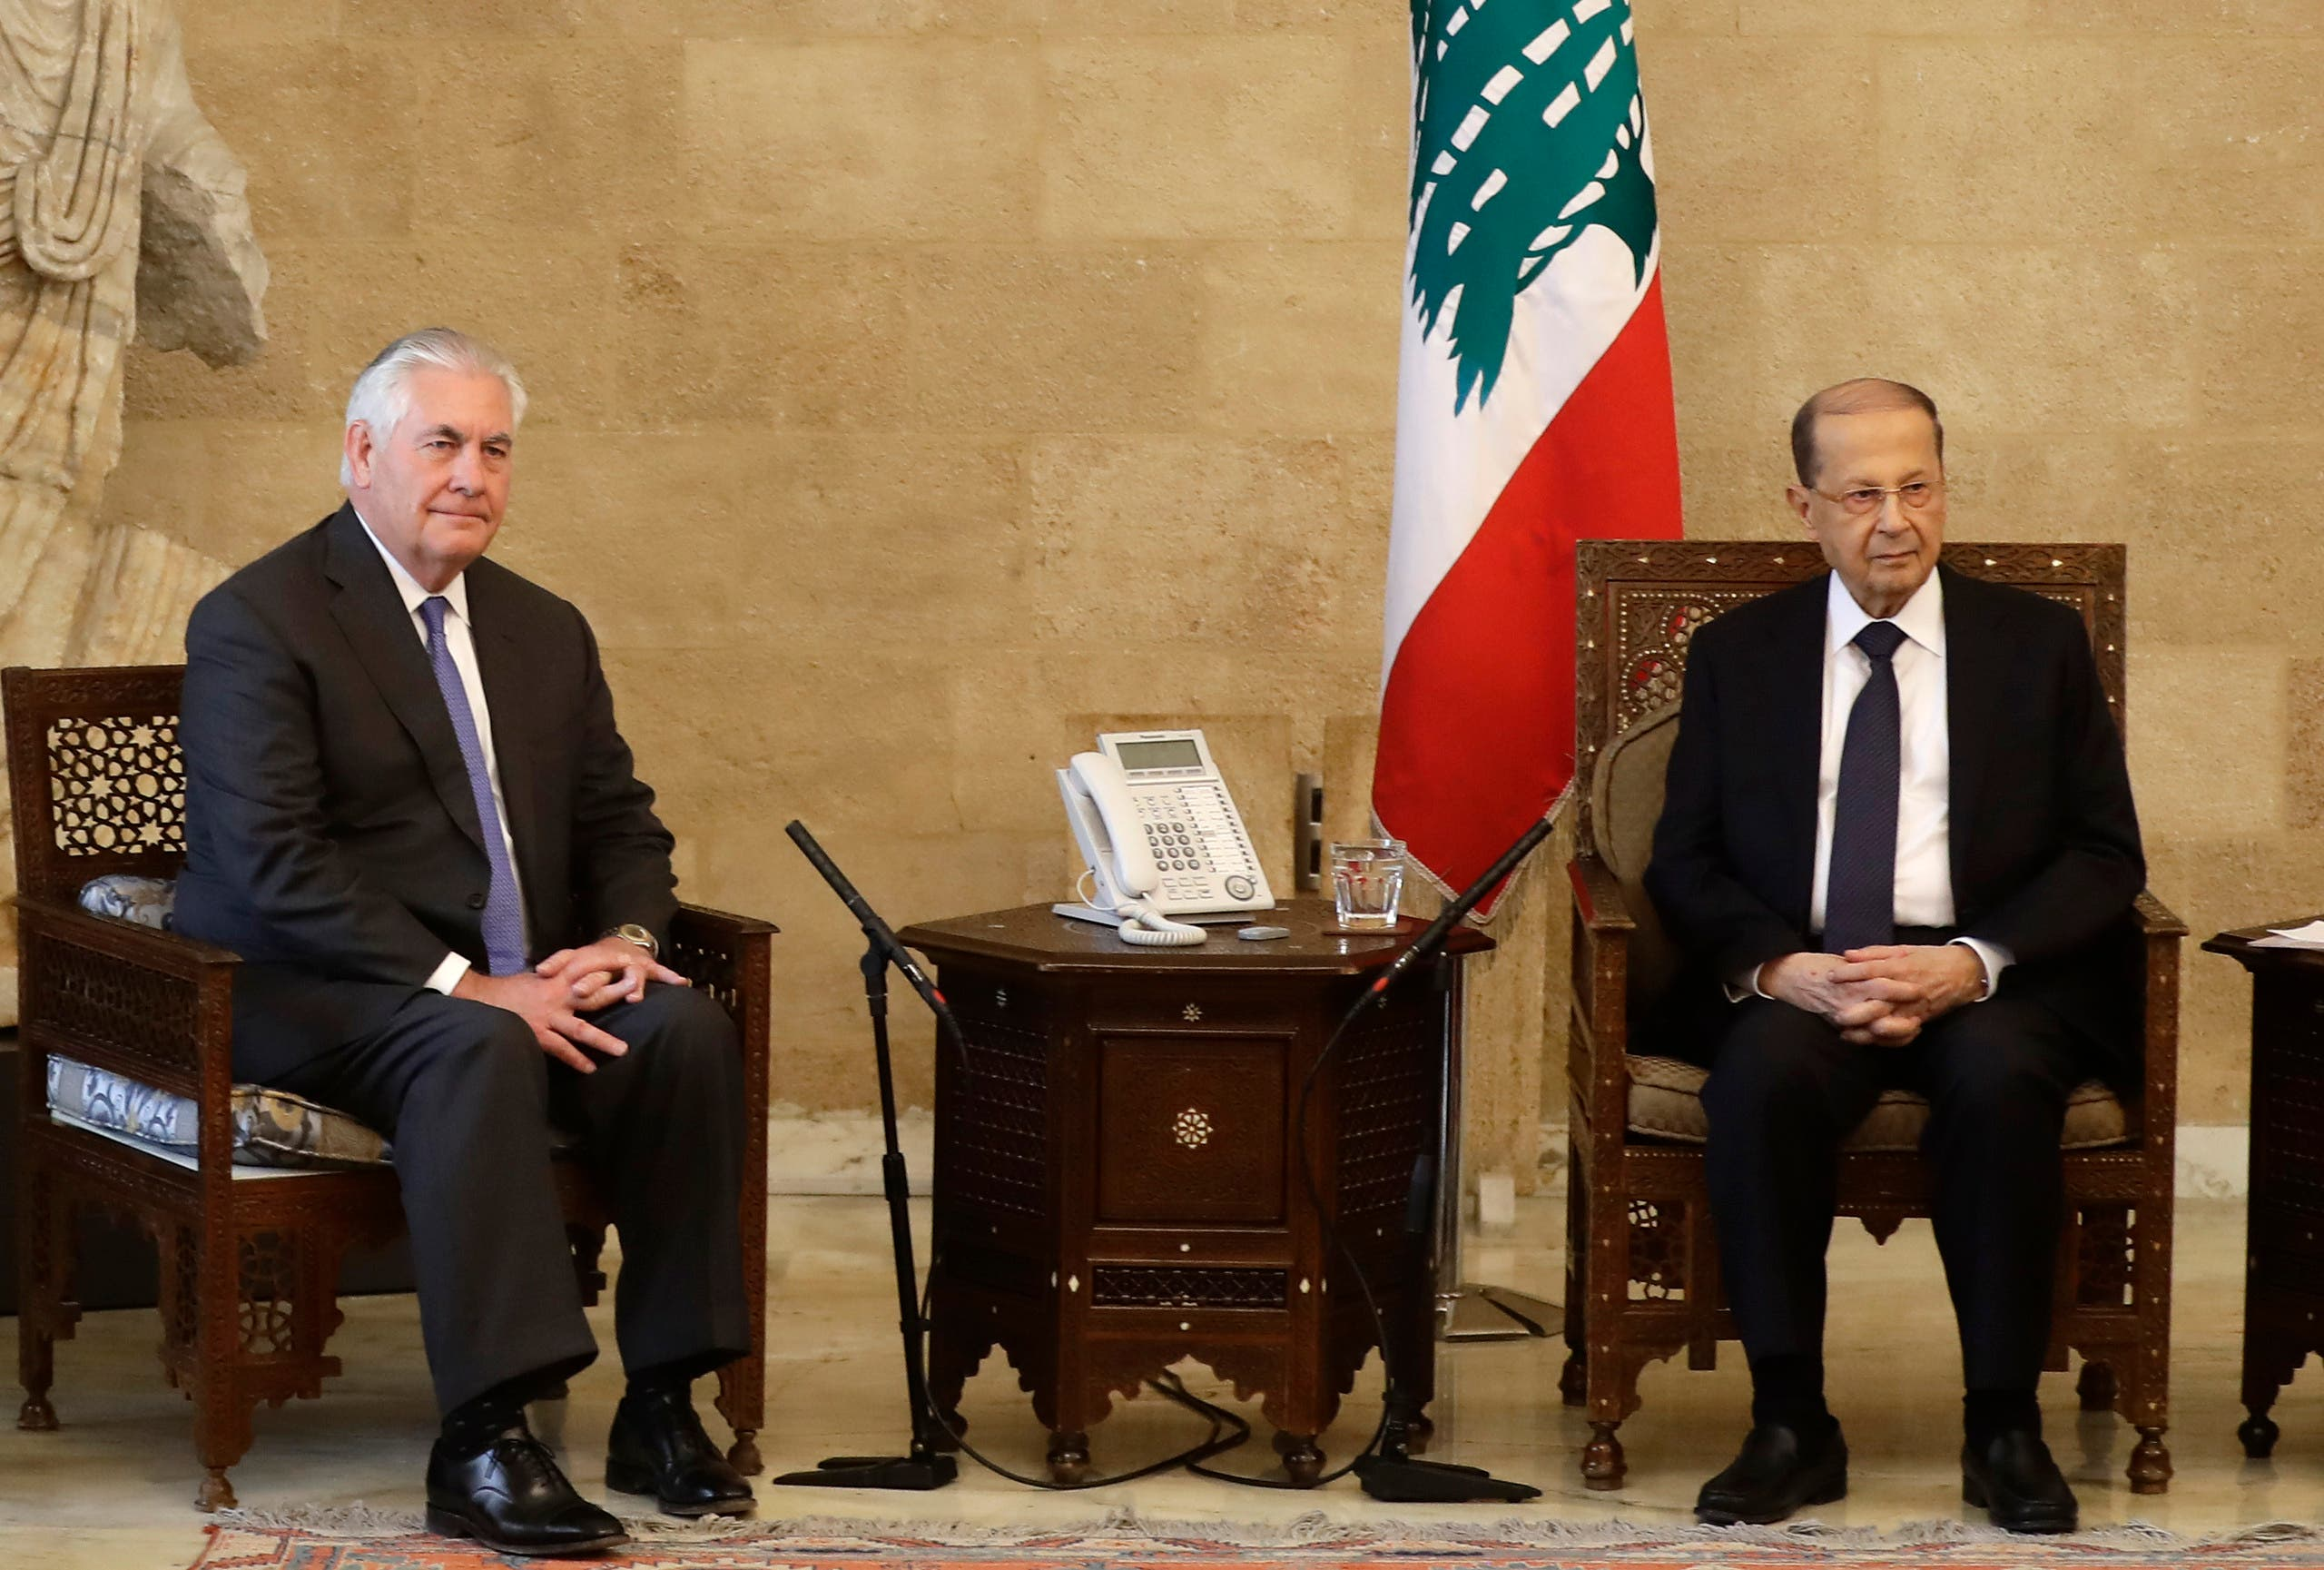 US Secretary of State Rex Tillerson (L) meets with Lebanese President Michel Aoun at the presidential palace in Baadba on the outskirts of the capital Beirut on February 15, 2018.  Joseph EID / AFP